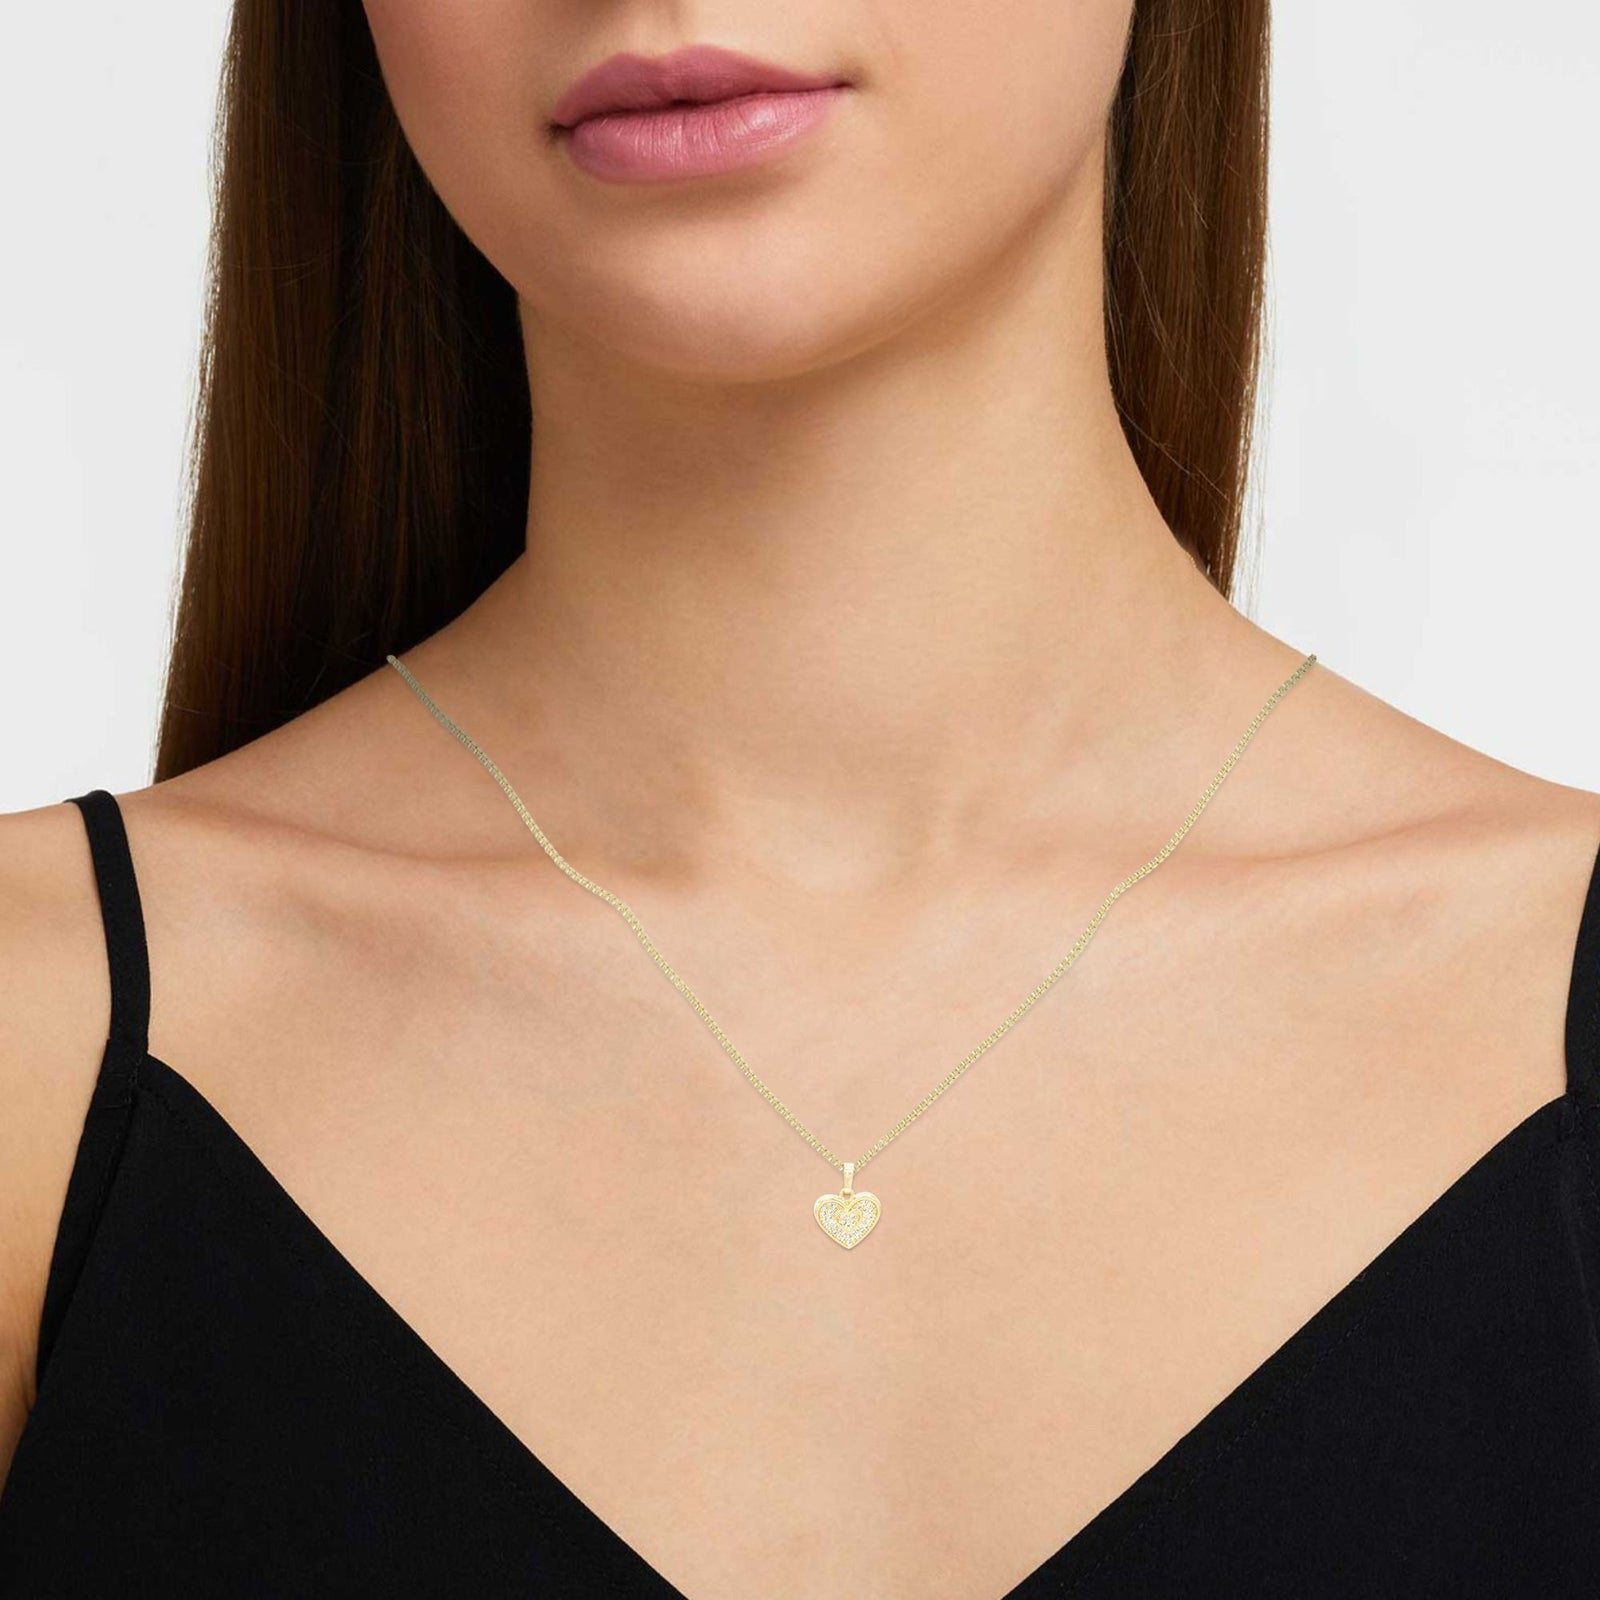 Heart Binary Cubic Zirconia Pendant With Necklace Set 14K Gold Filled